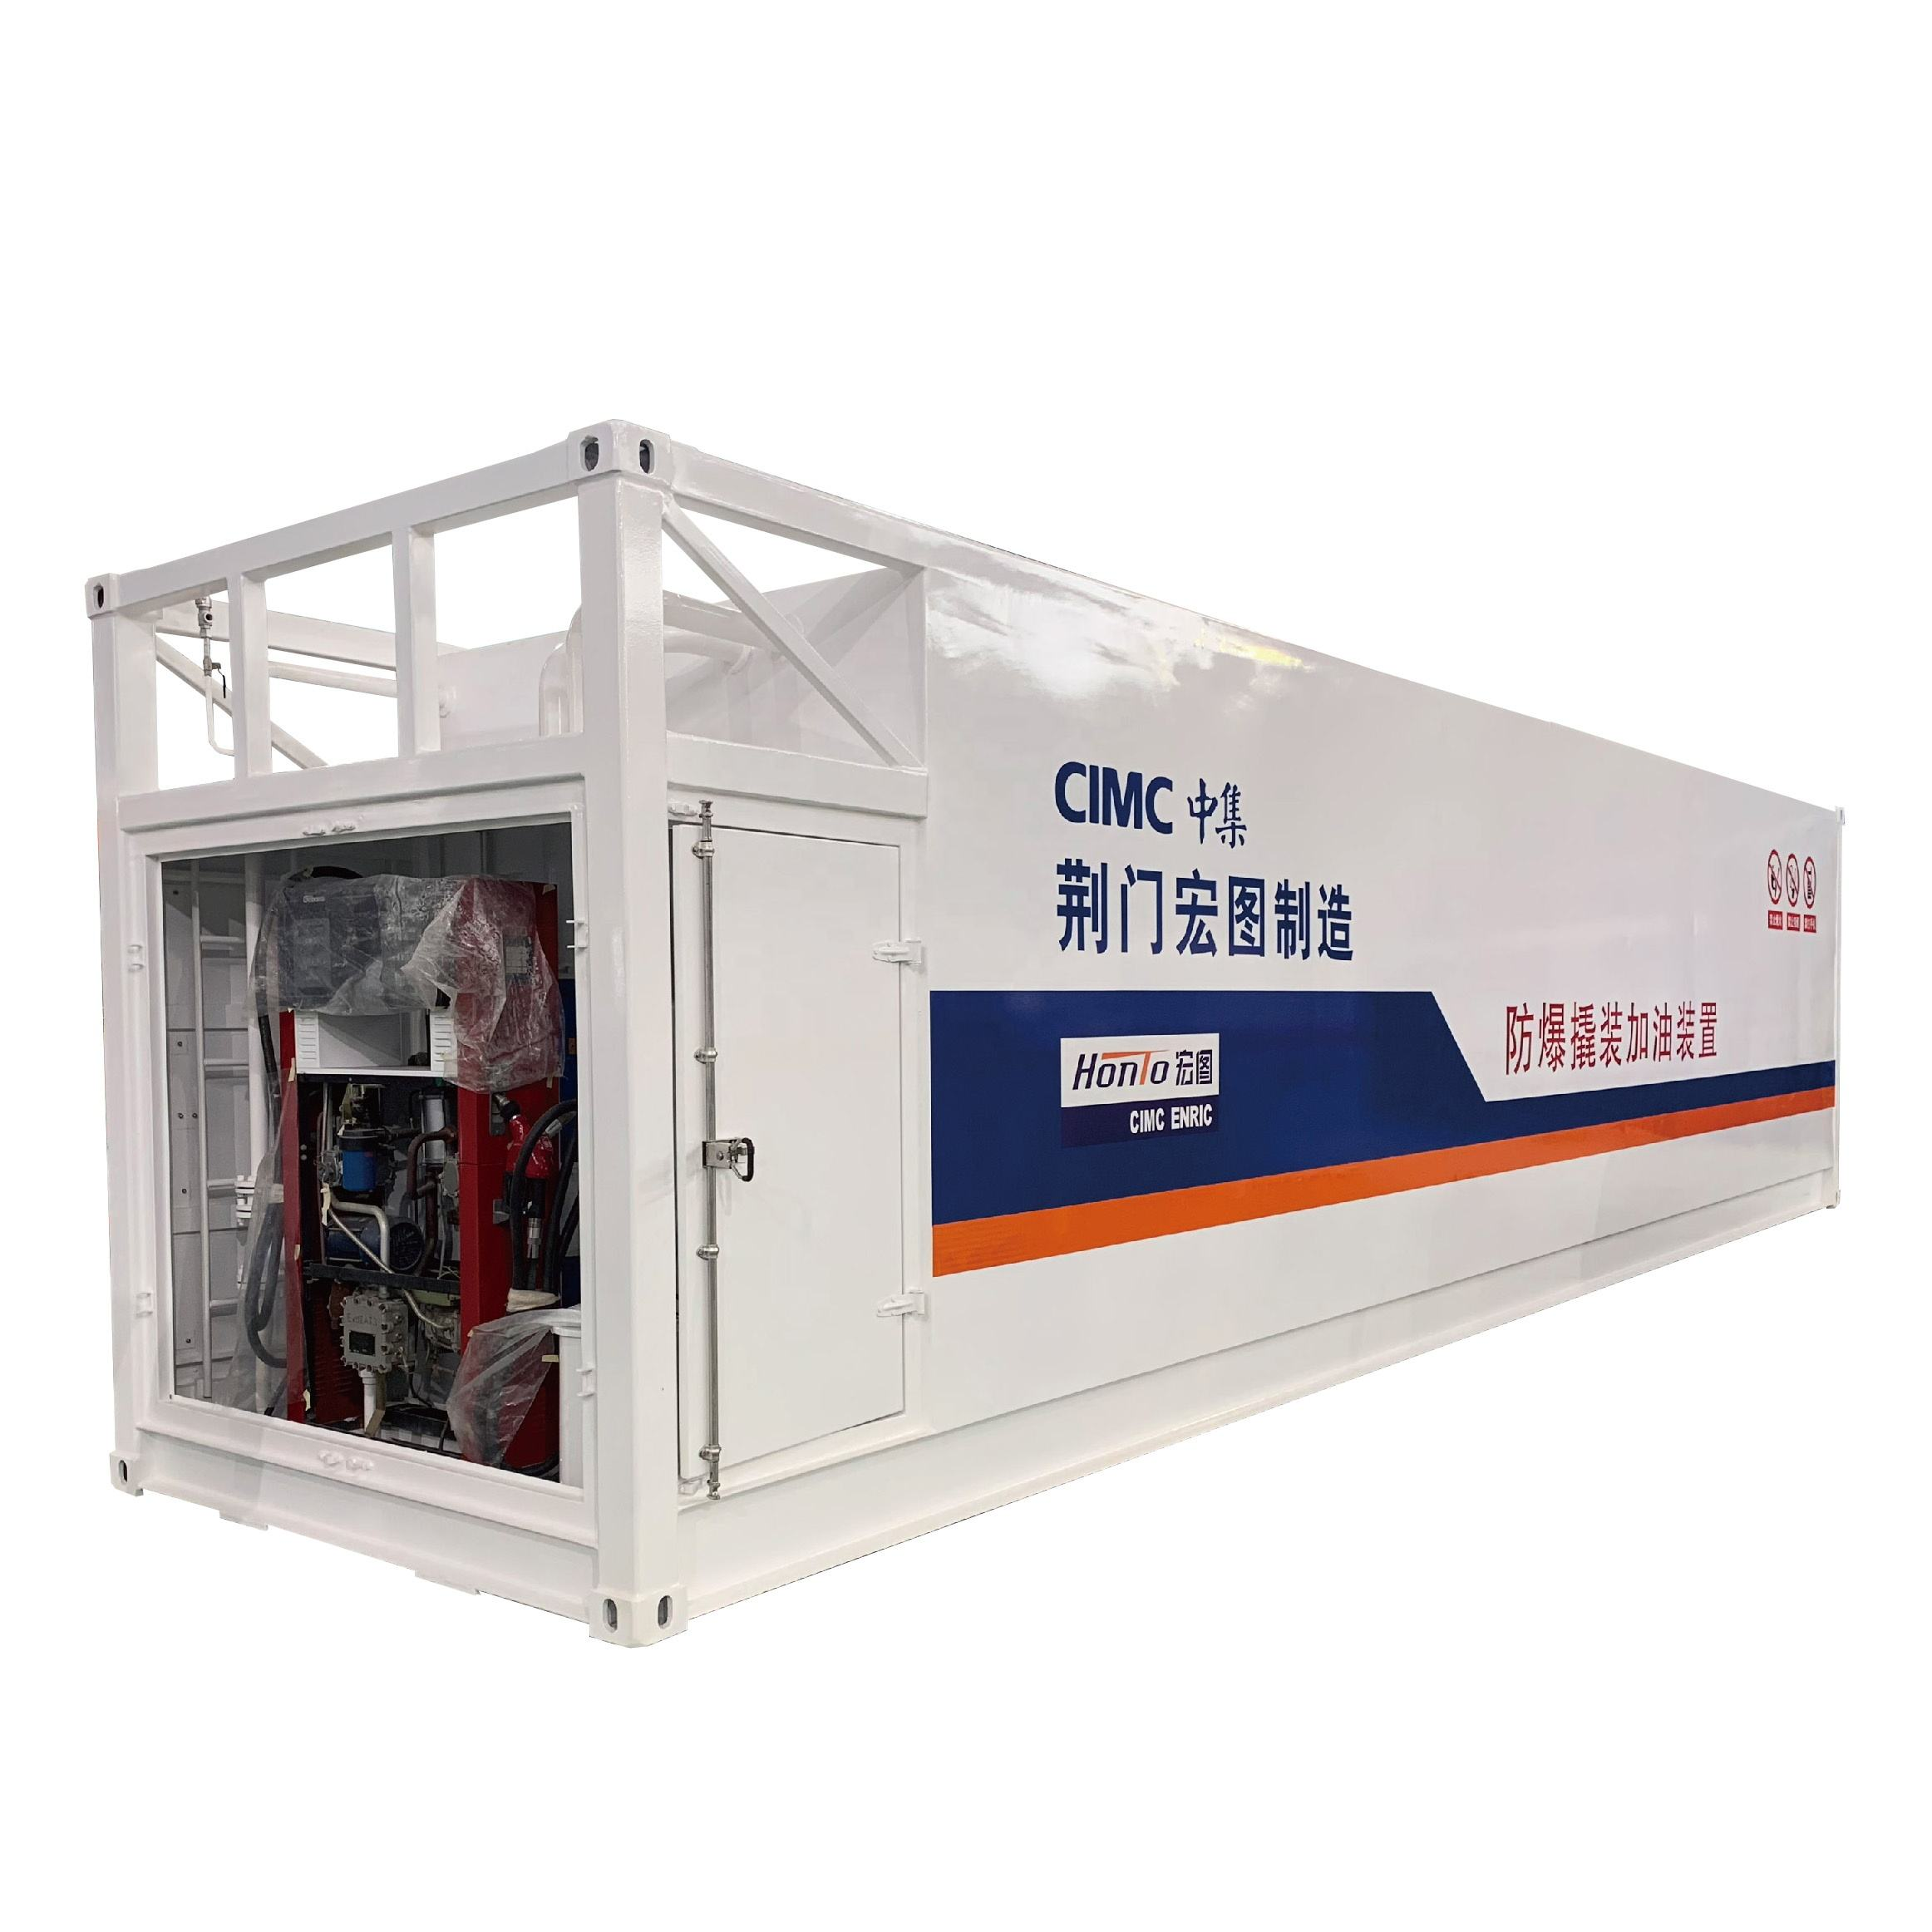 40ft Diesel Tank Container Portable Fuel Station with Filling Station Fuel Dispensing Pump